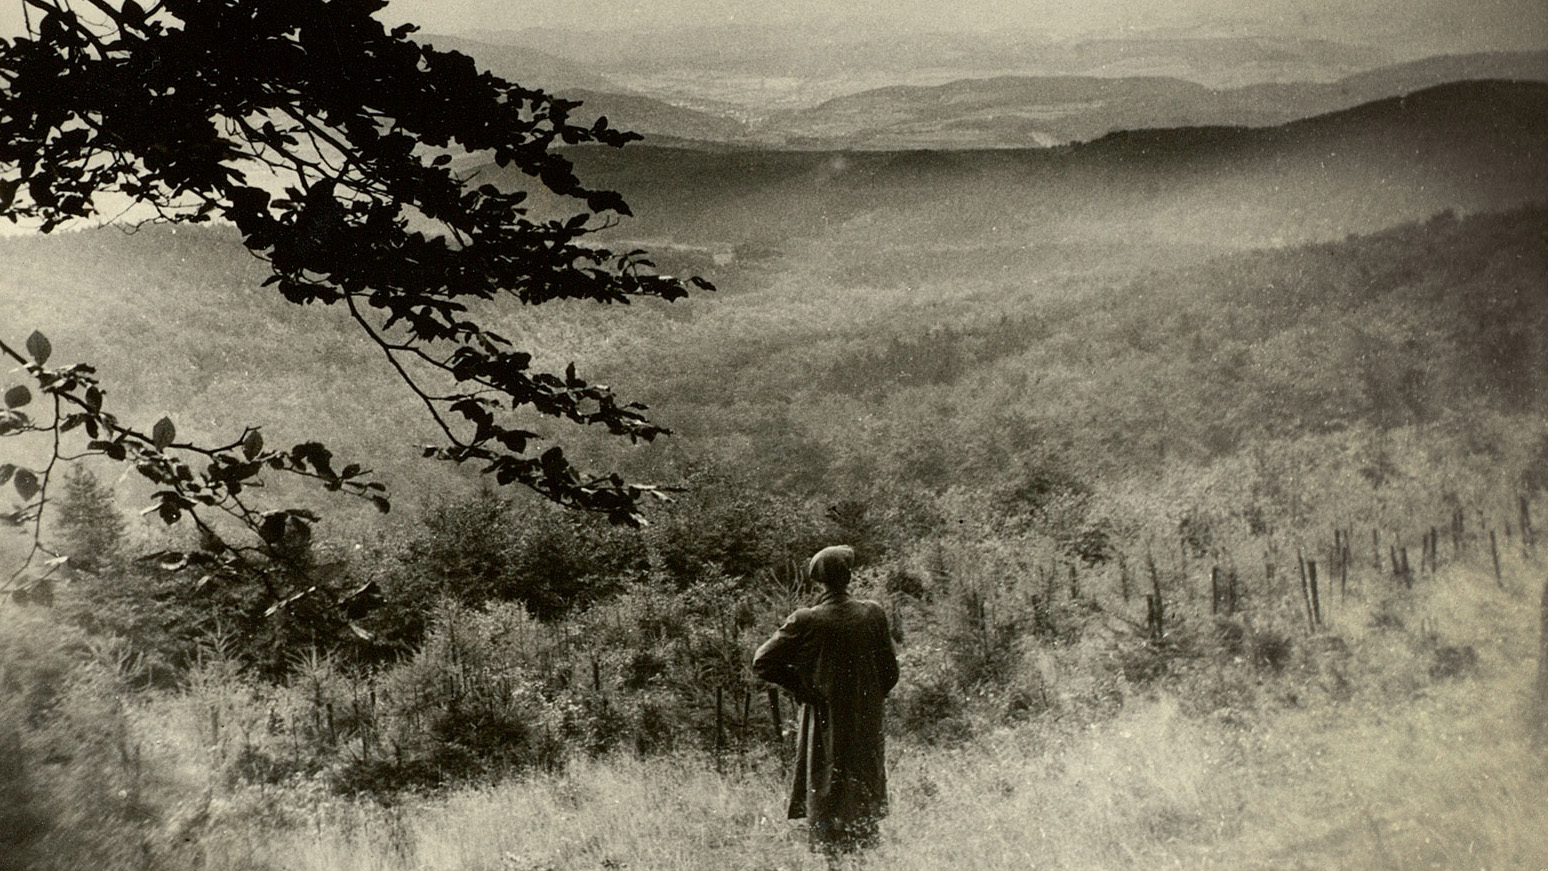 Jürgen von der Wense in the Kaufungen Forest, North Hesse, Germany, circa 1953. Photograph from the archive of Heddy Esche.